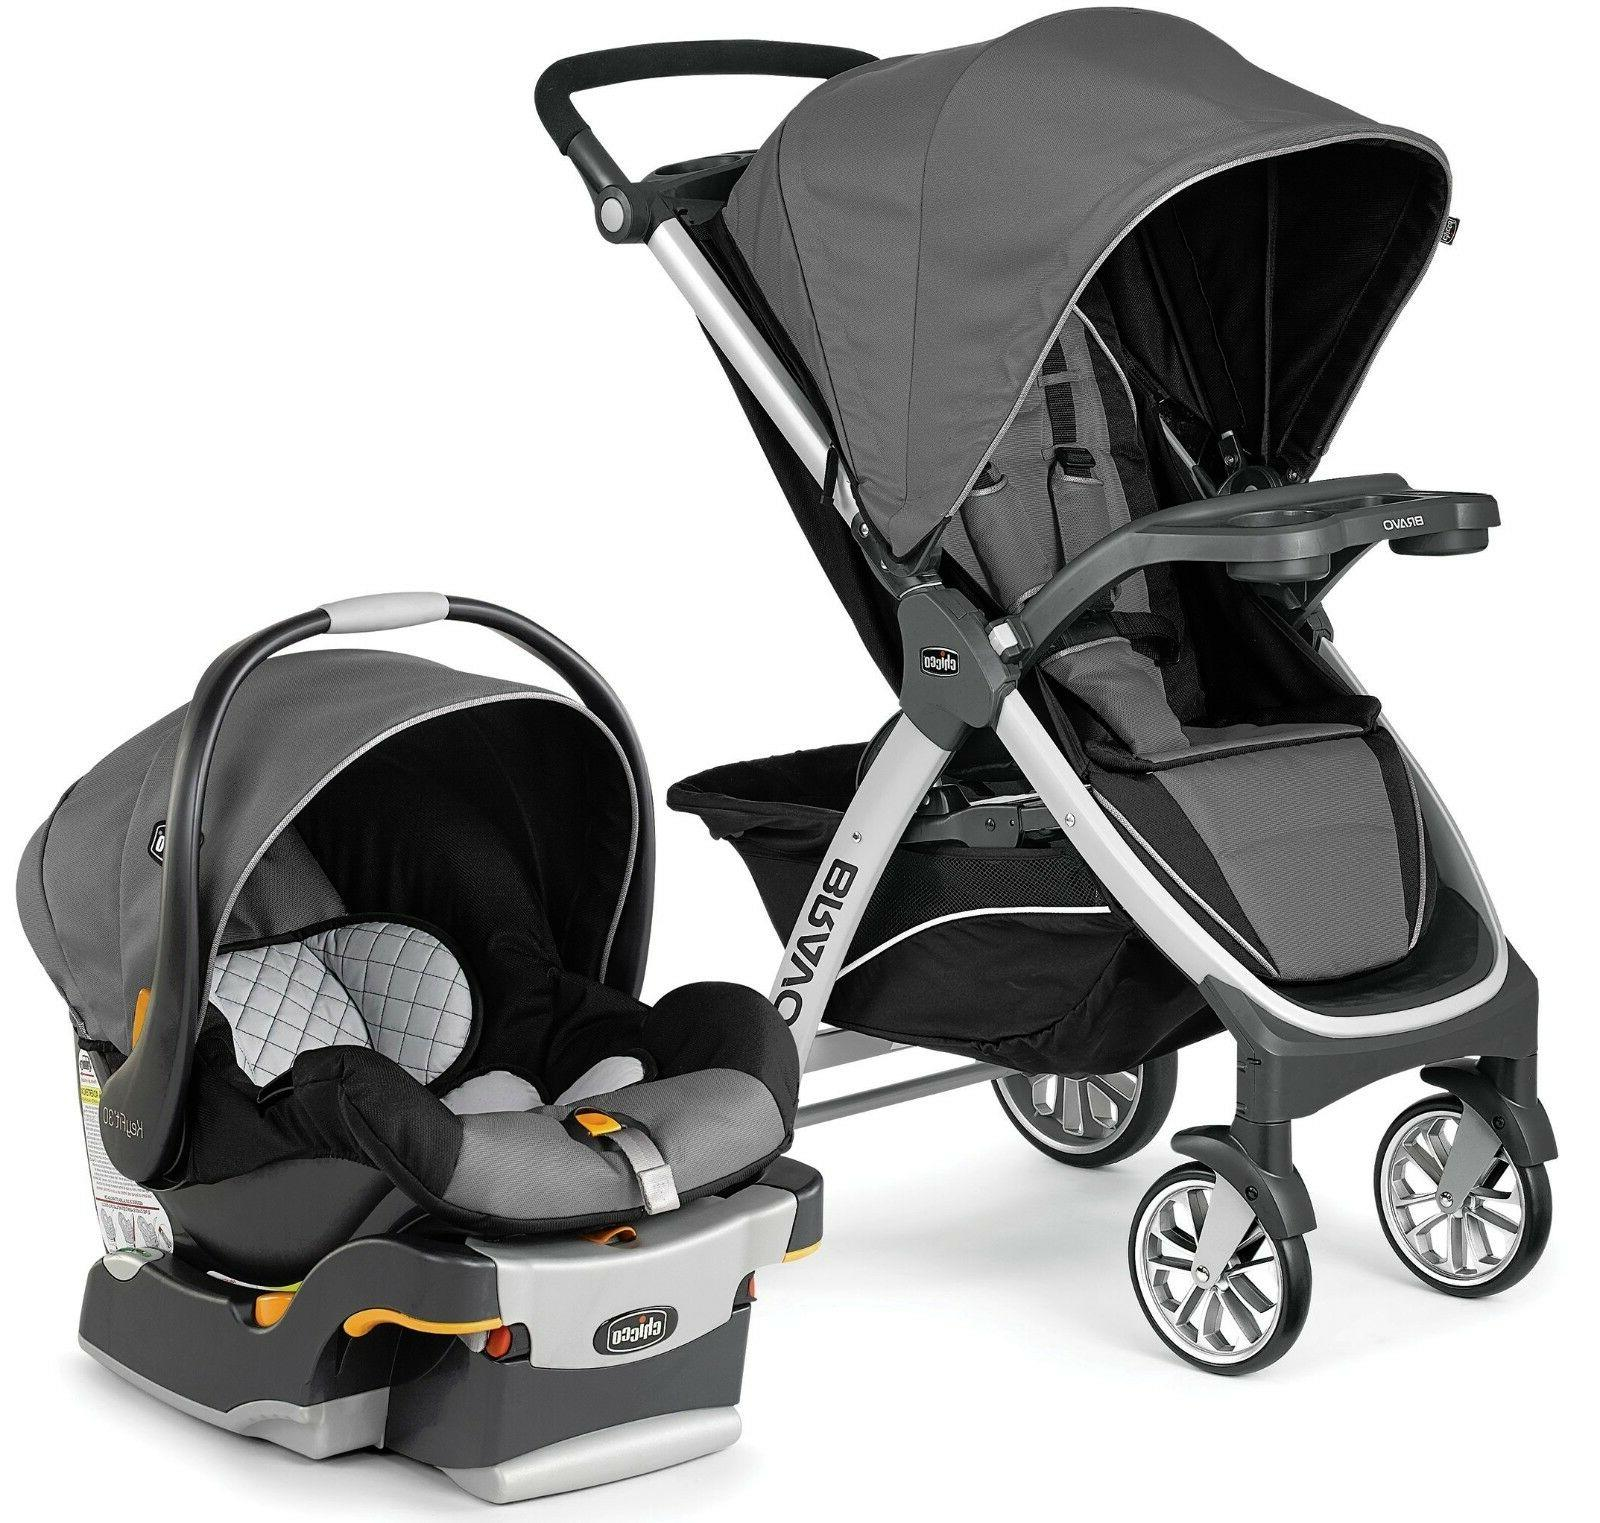 Chicco Bravo Trio 3-in-1 Baby Travel System Stroller w/ KeyF